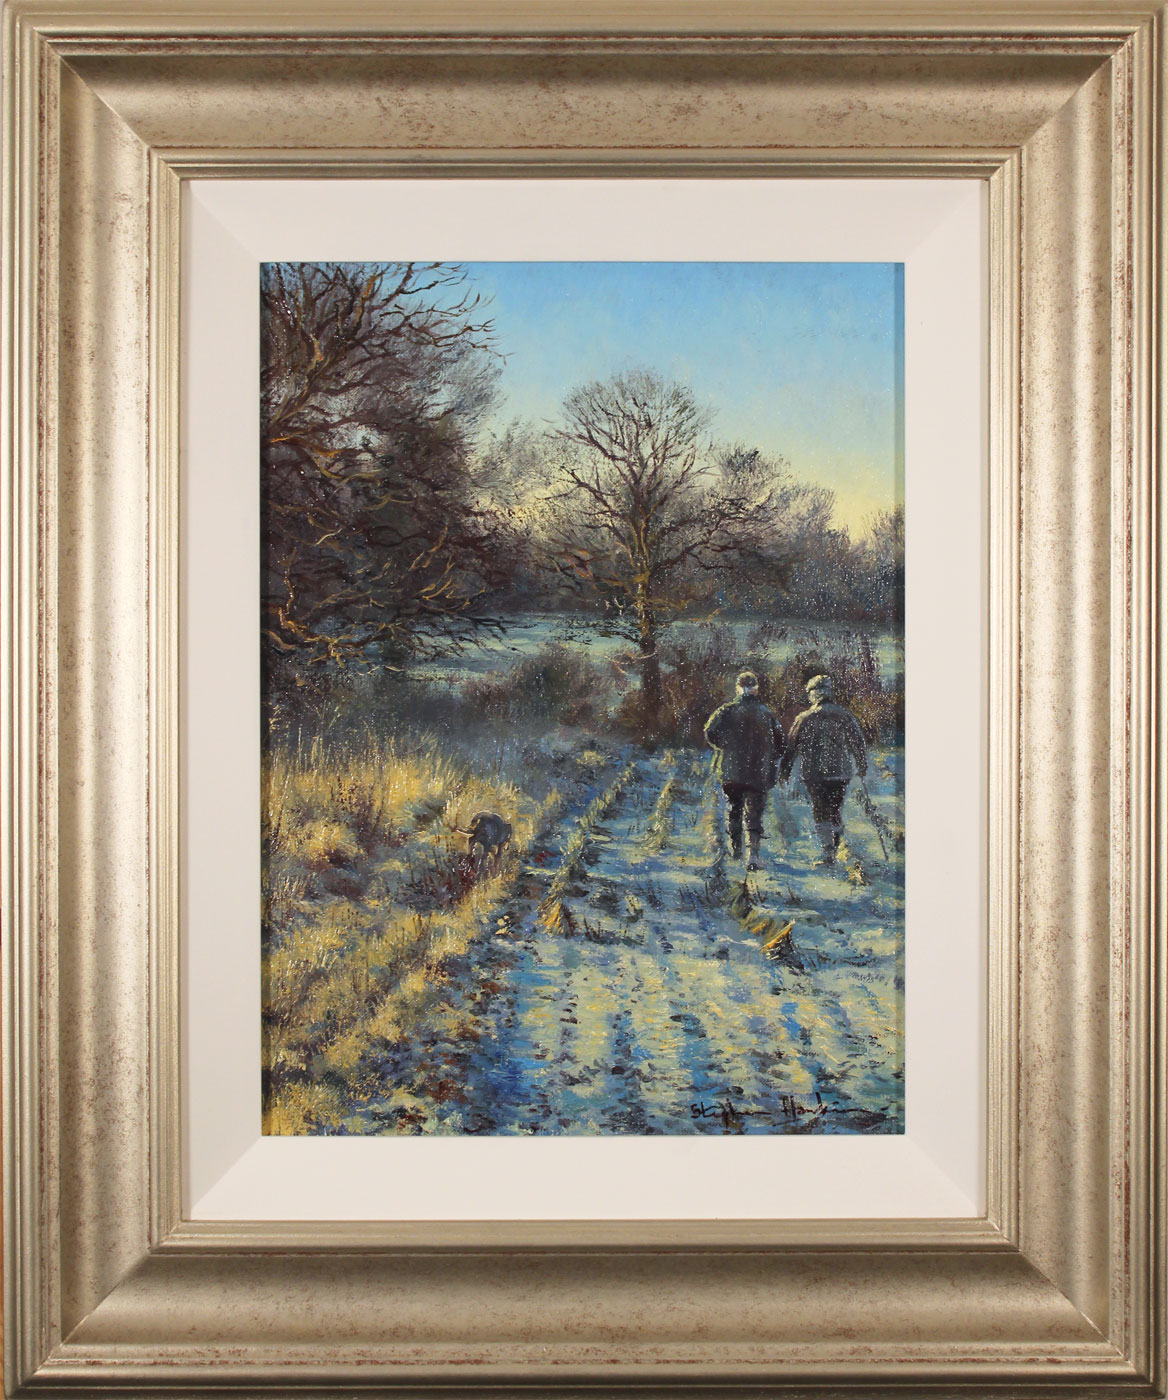 Stephen Hawkins, Original oil painting on canvas, First Frost, click to enlarge